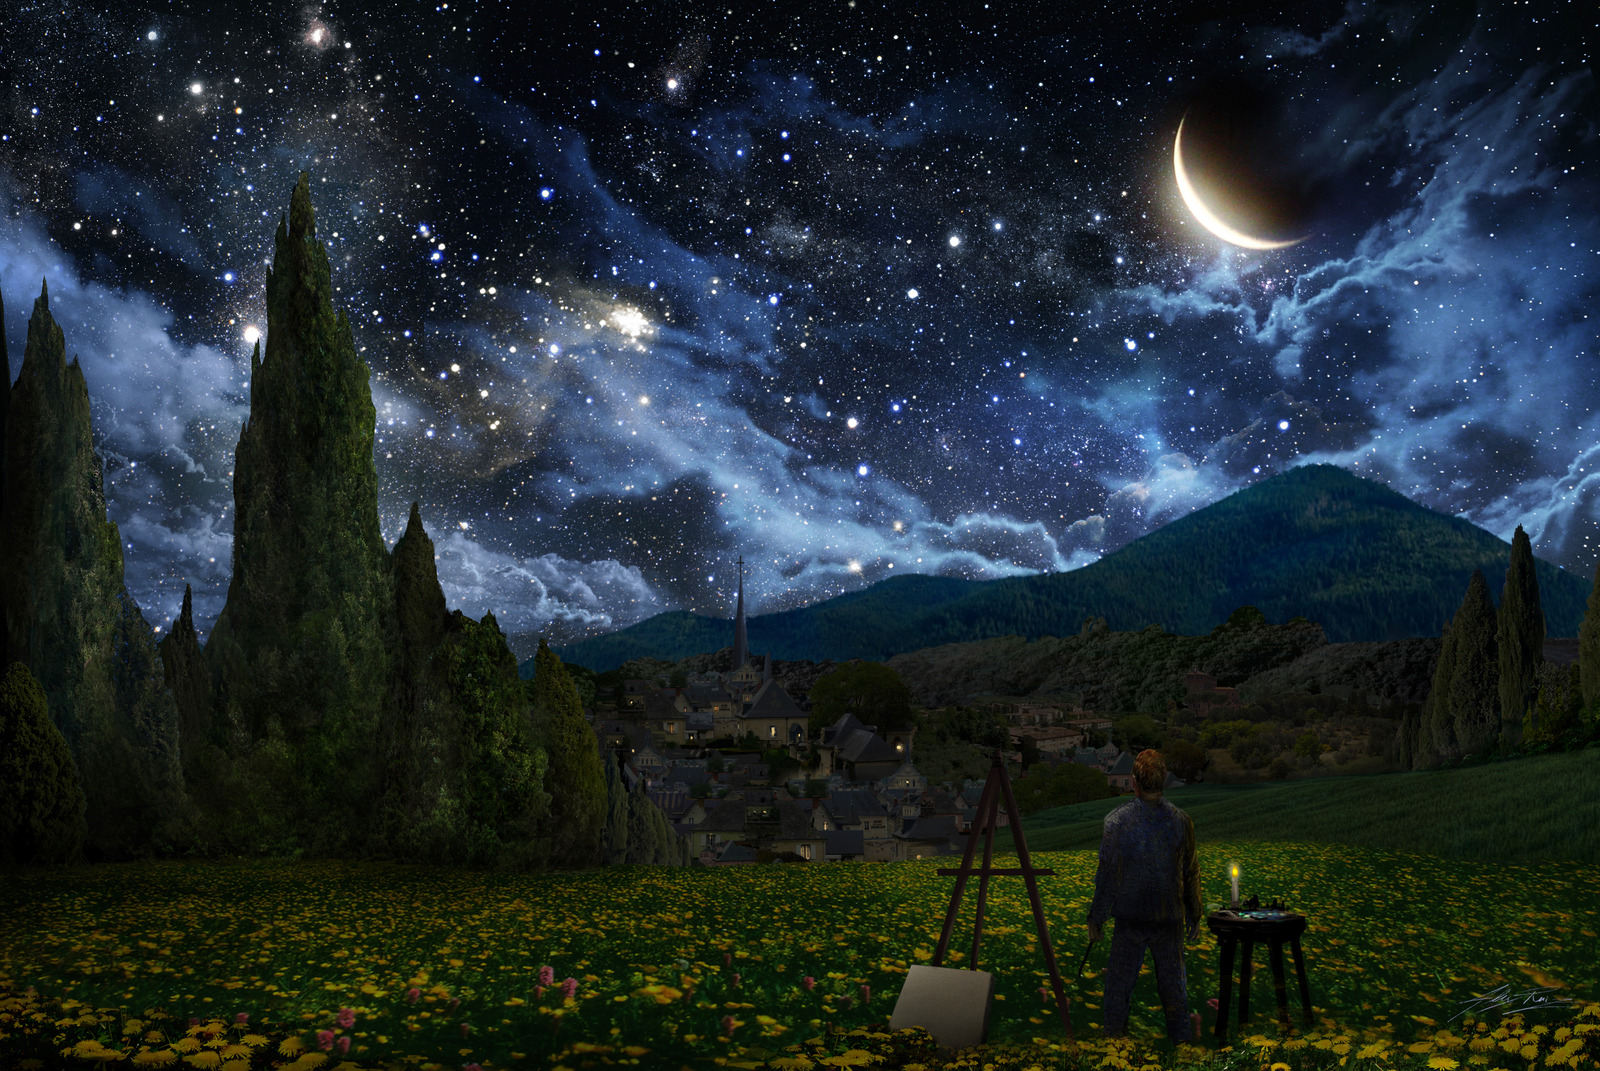 van goghs starry eyes brings out a starry night essay Read this essay on vincent van gogh - self portrait with bandaged ear  van gough's starry night uses the curve of  the place he hung out at night.